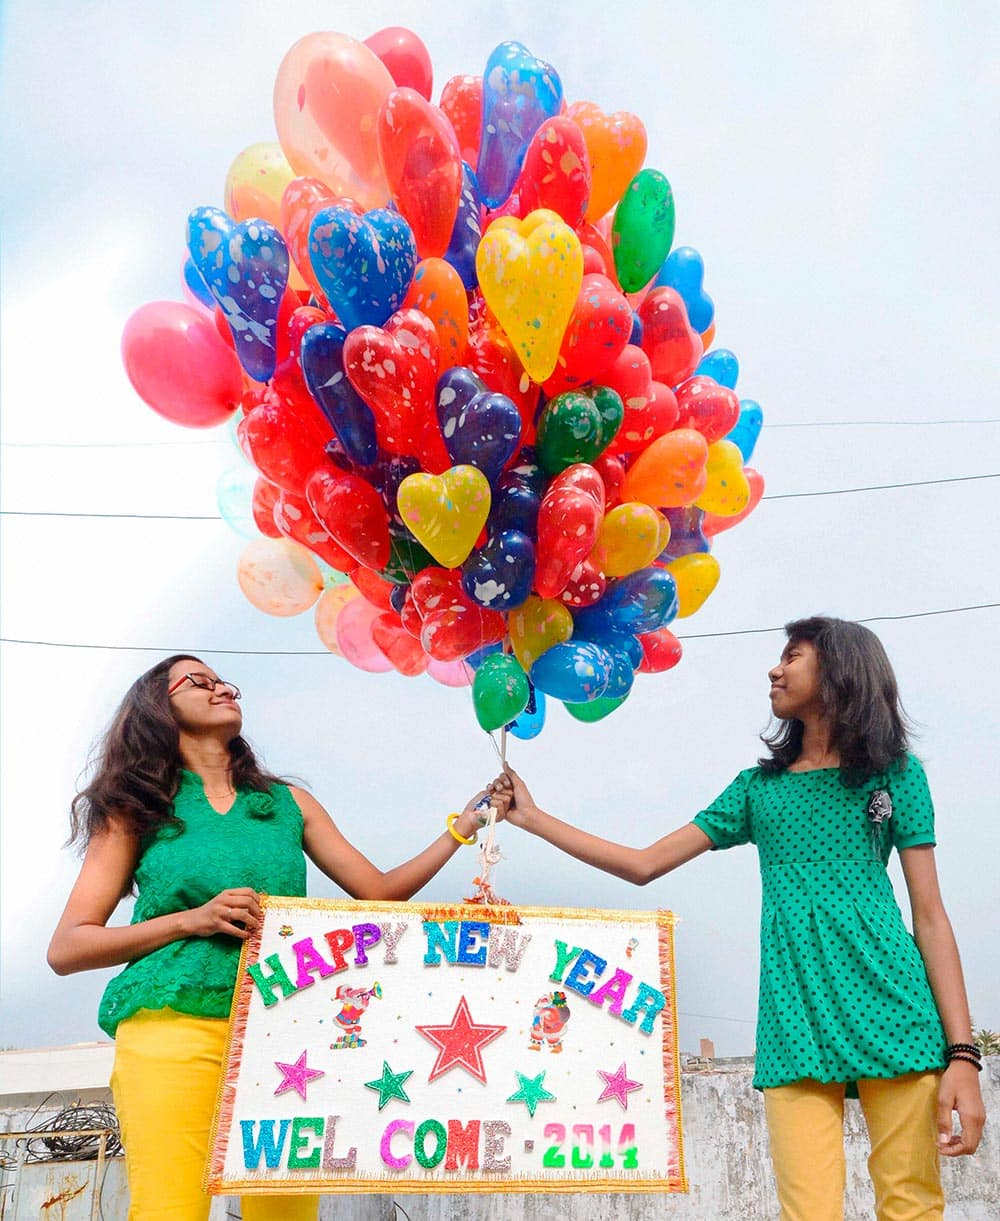 Christians gather at Church to release balloons on the occasion of New Year 2014 in Ahmedabad.